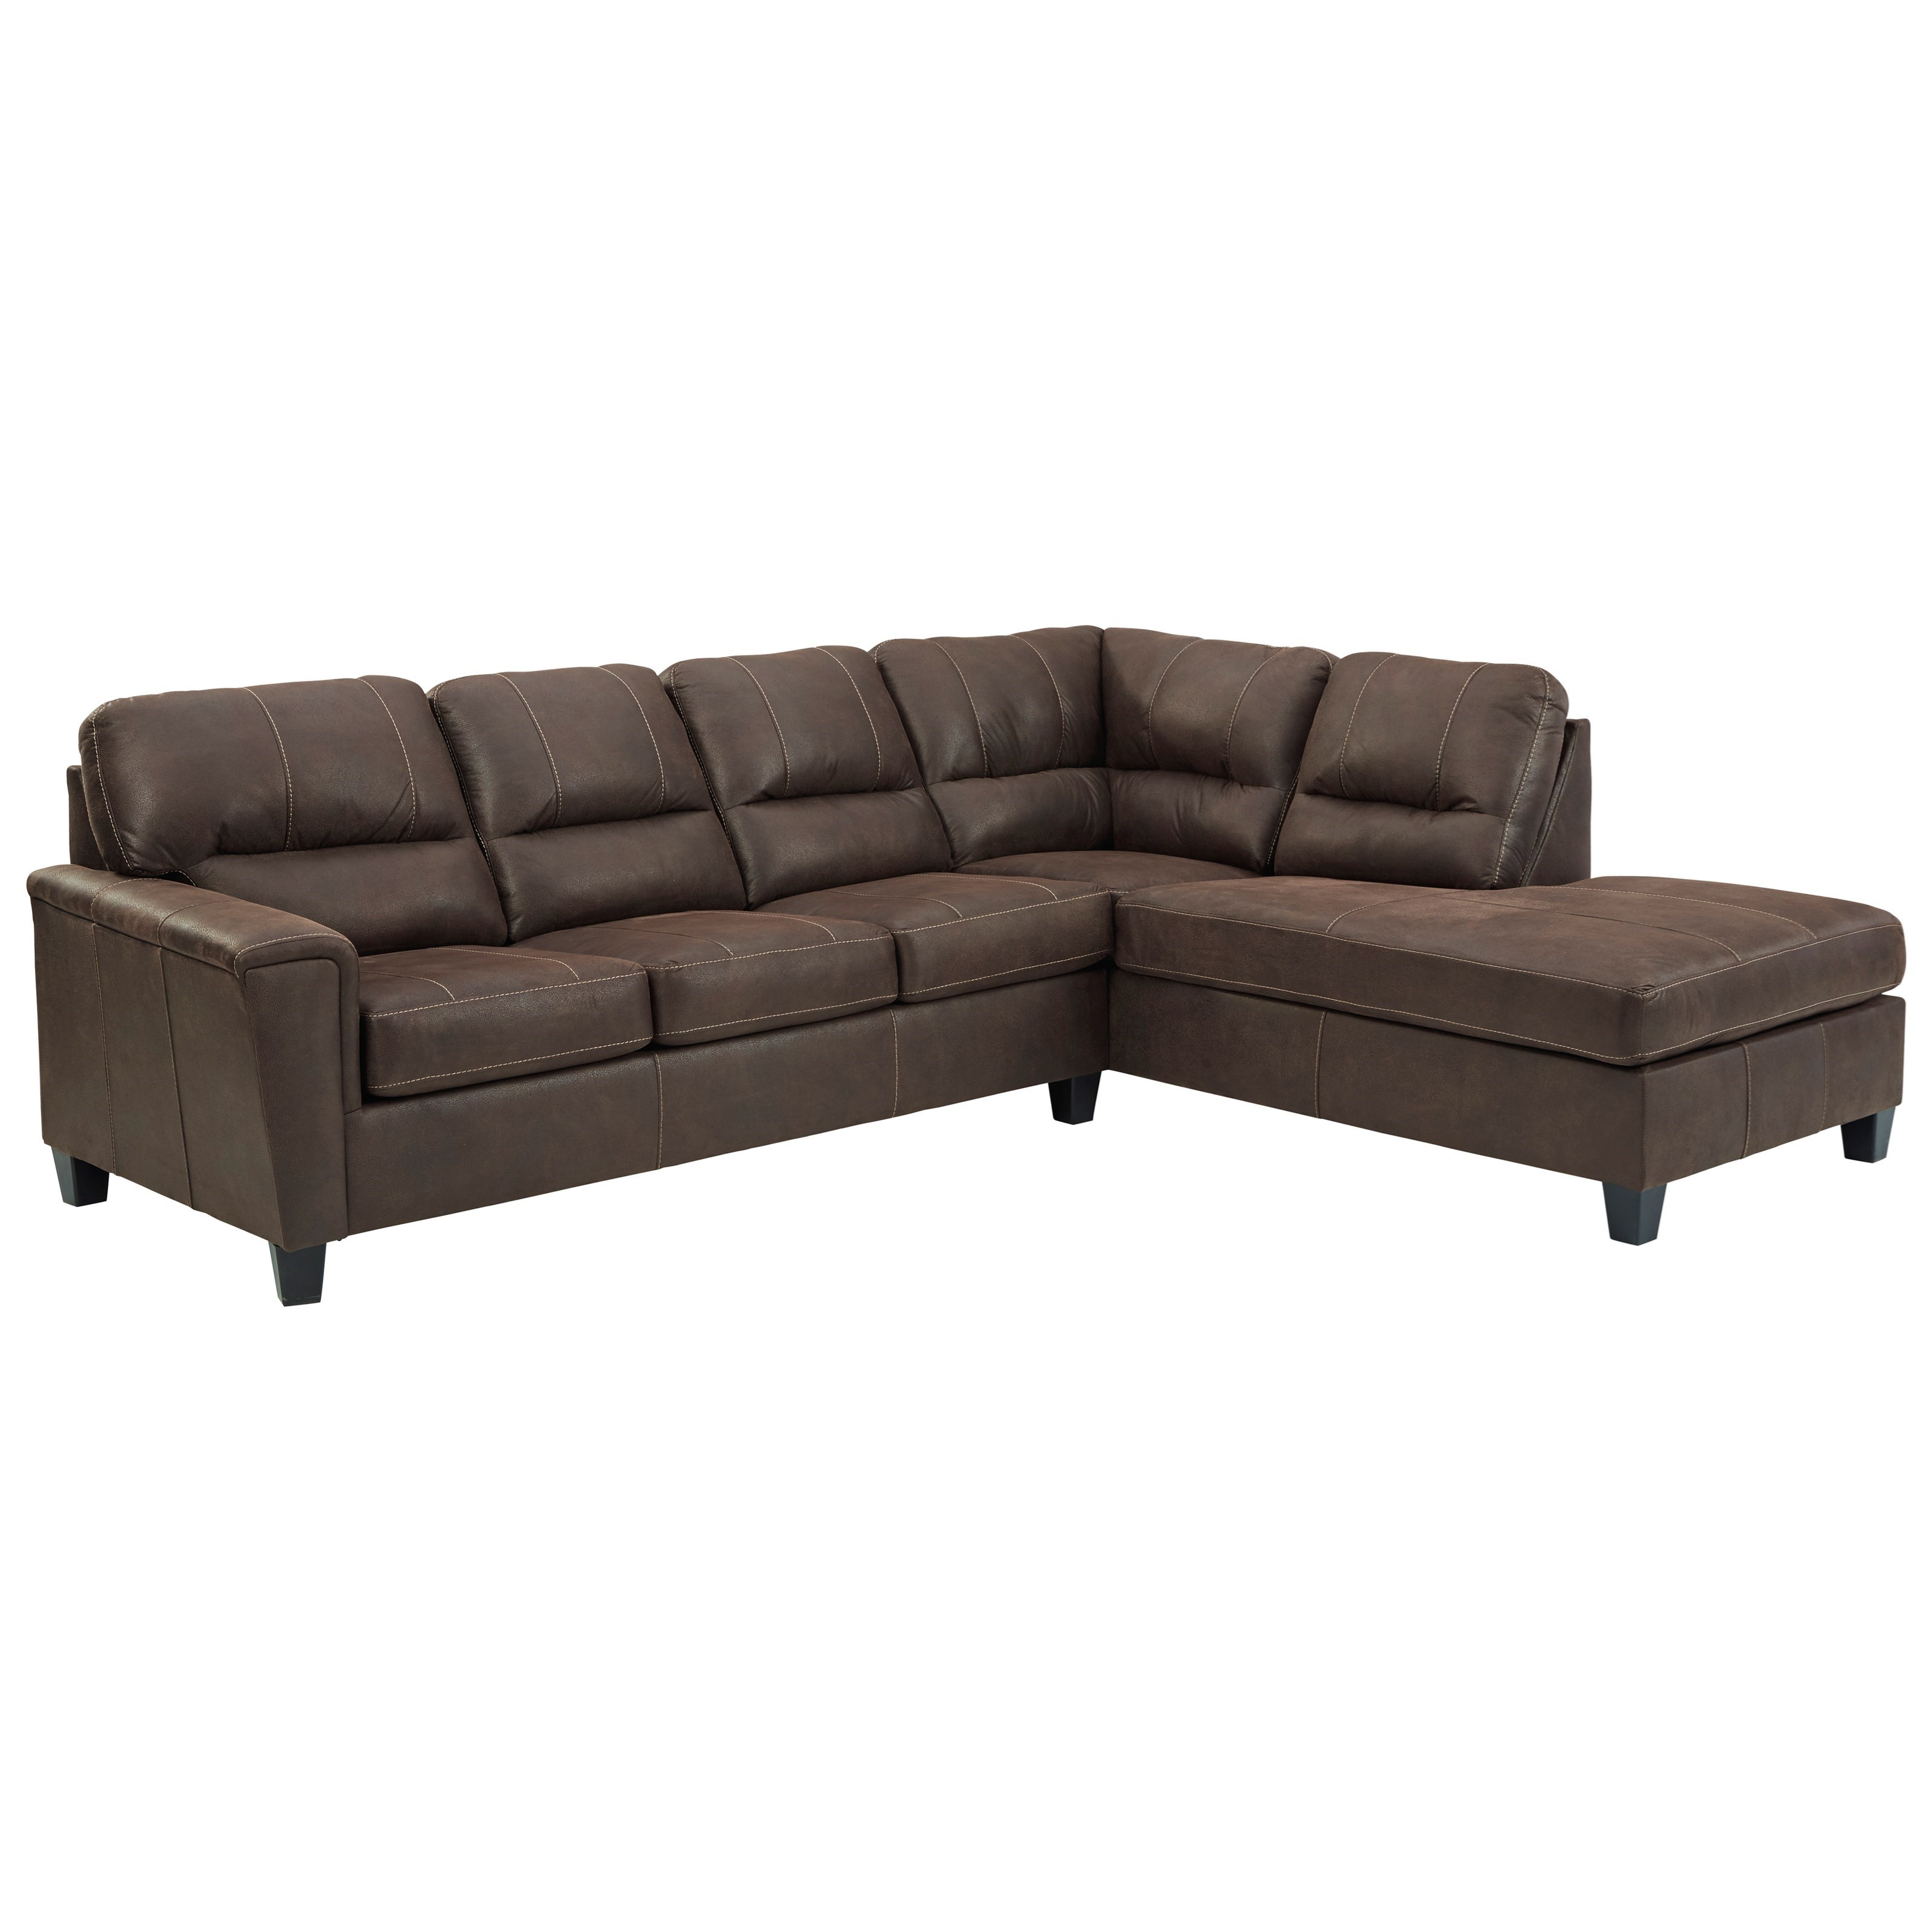 Nash Chestnut 2-Piece Sectional with Right Chaise by Signature at Walker's Furniture